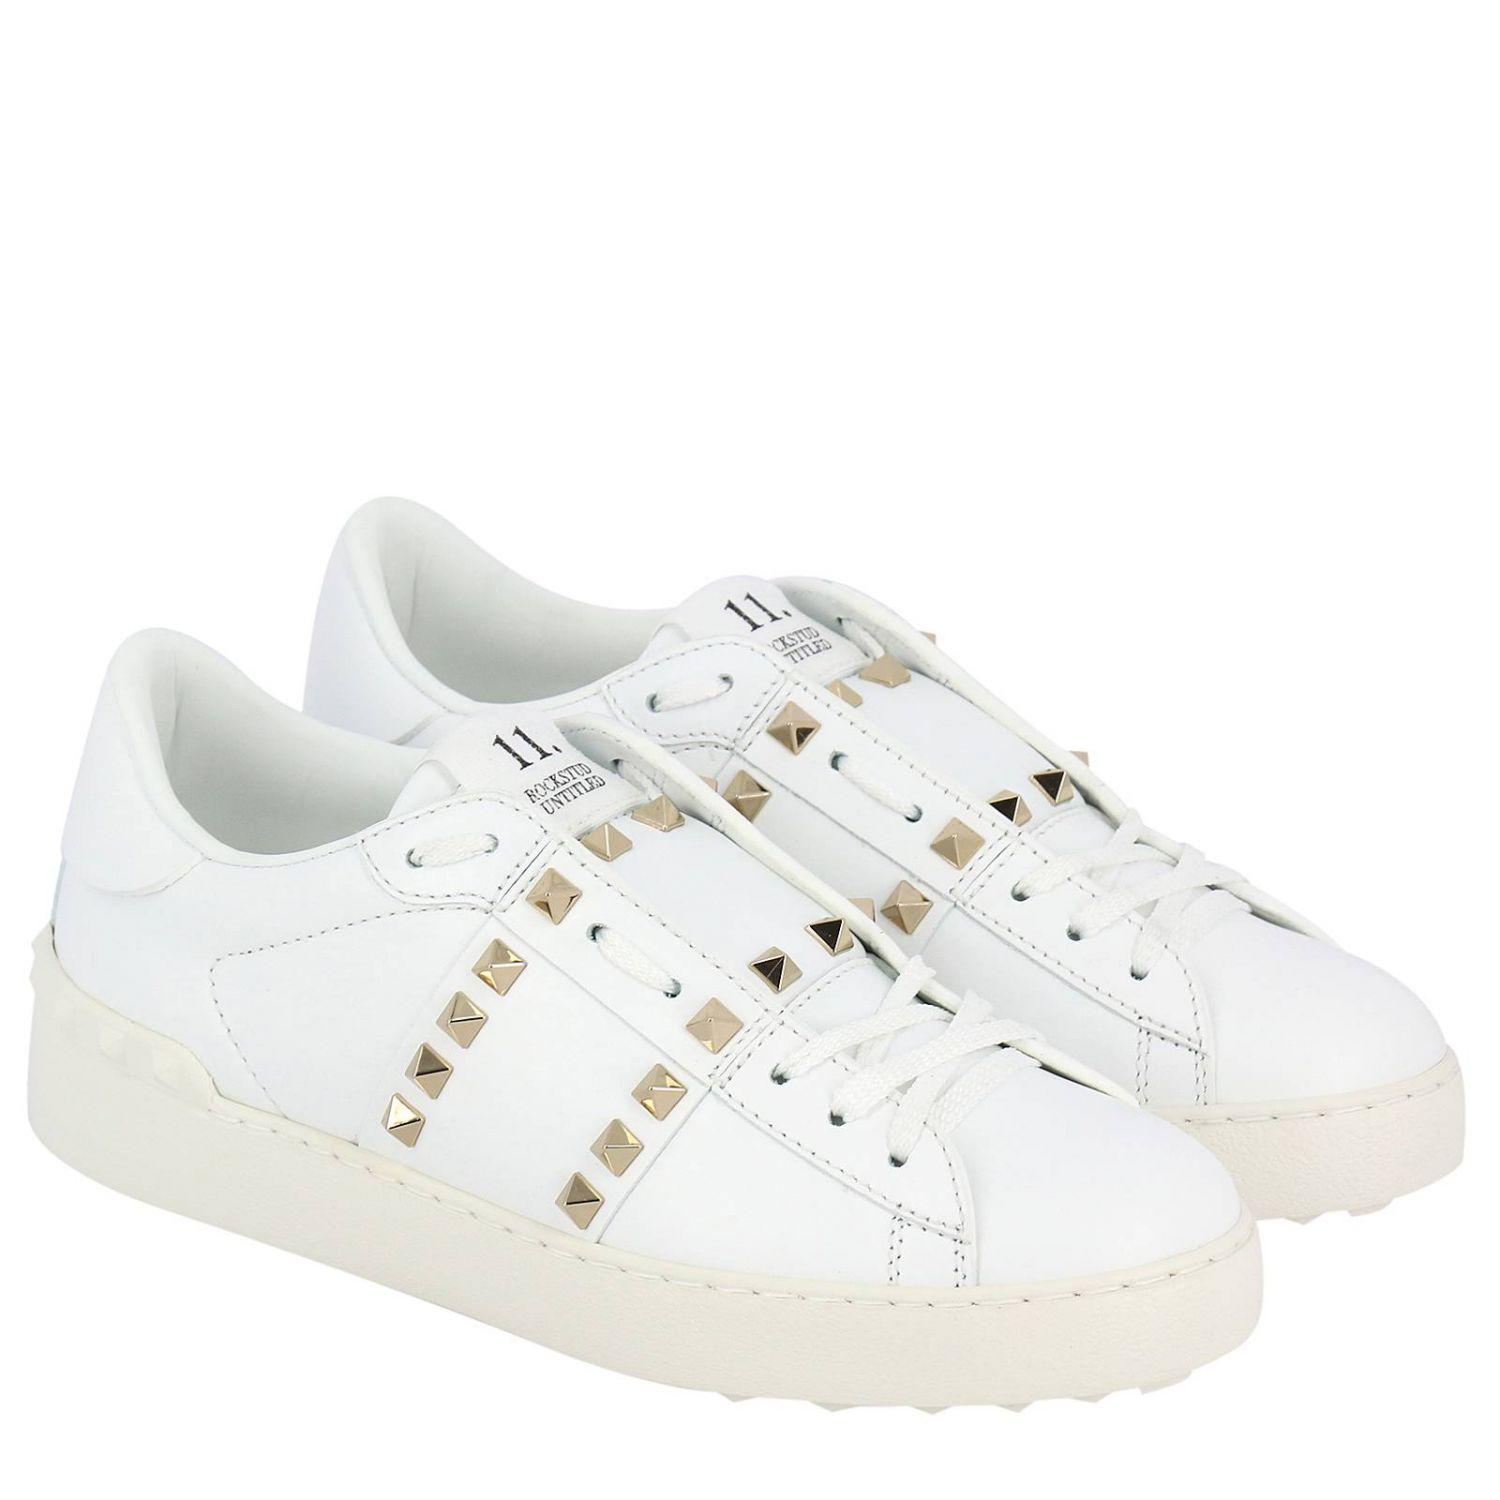 Spike Rockstud Sneakers Valentino Untitled Lyst 11 In White 0O8nwPkX